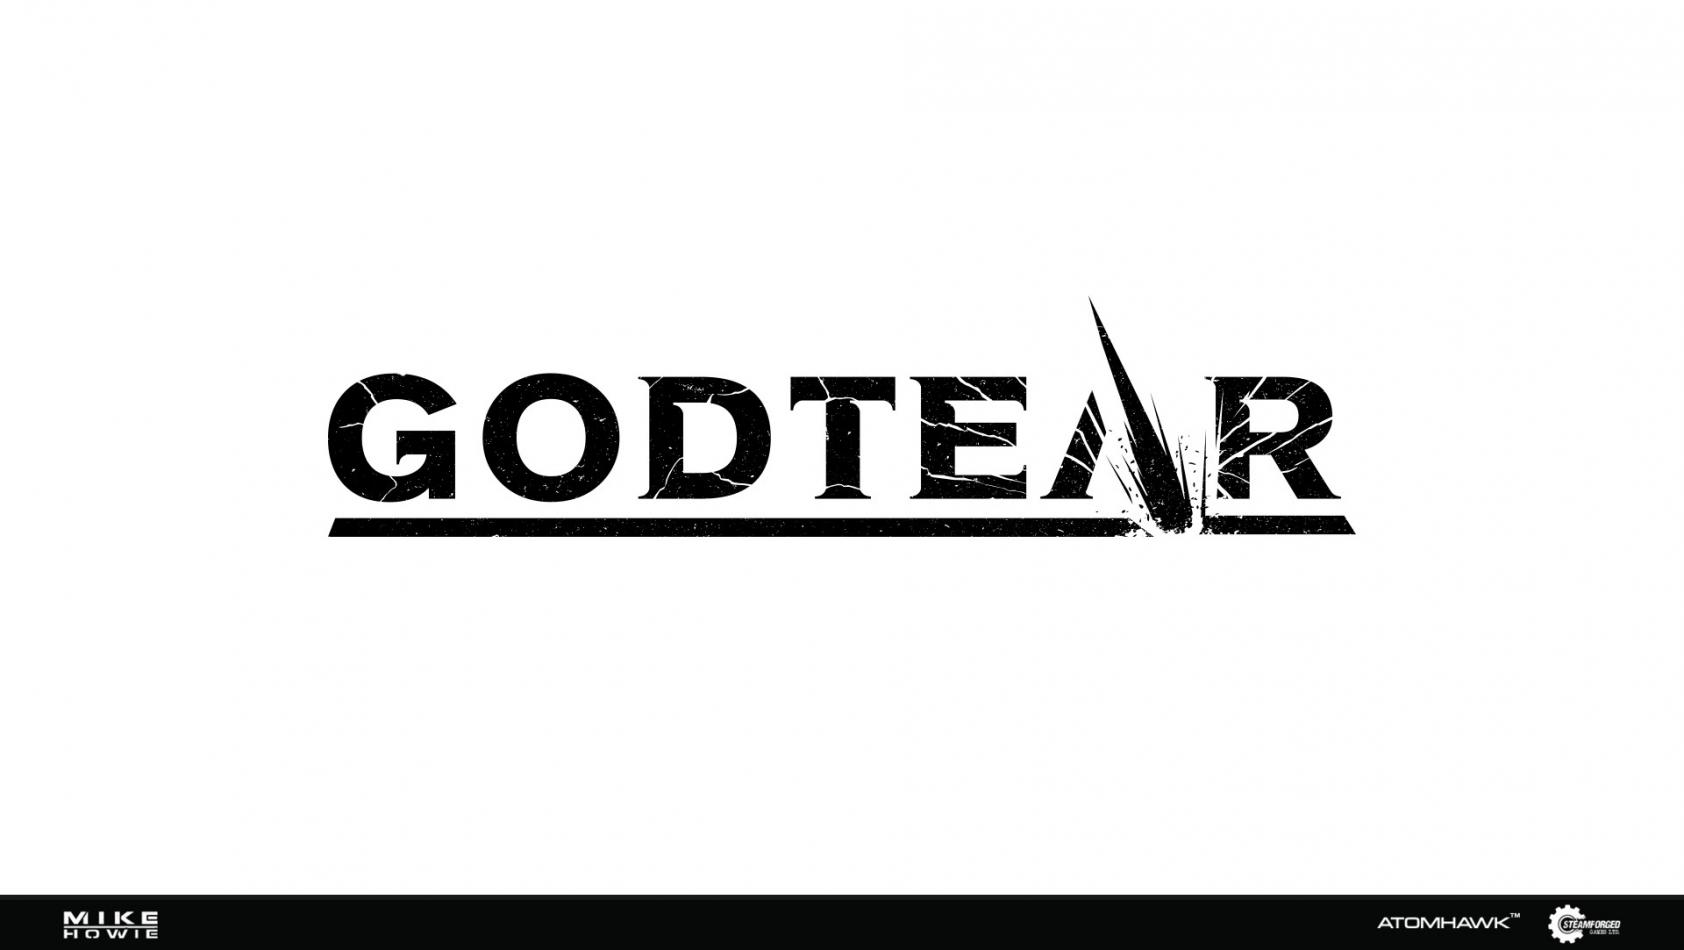 For the Love of Godtear